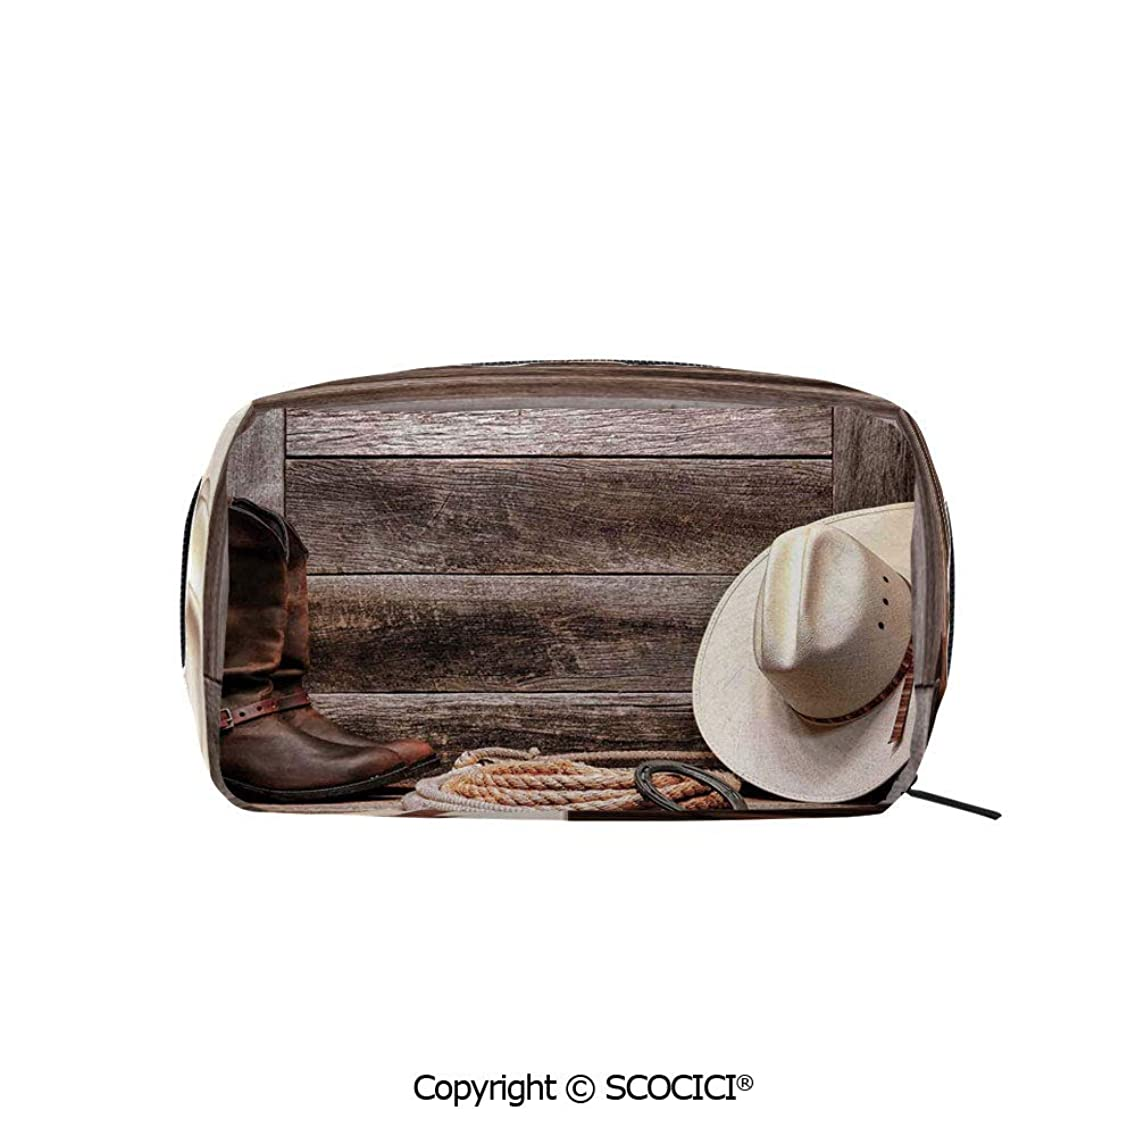 Rectangle Organizer Toiletry Makeup Bags Pouch American West Rodeo White Straw Cowboy Hat with Lariat Leather Boots on Rustic Barn Wood Portable Makeup Brushes Bag